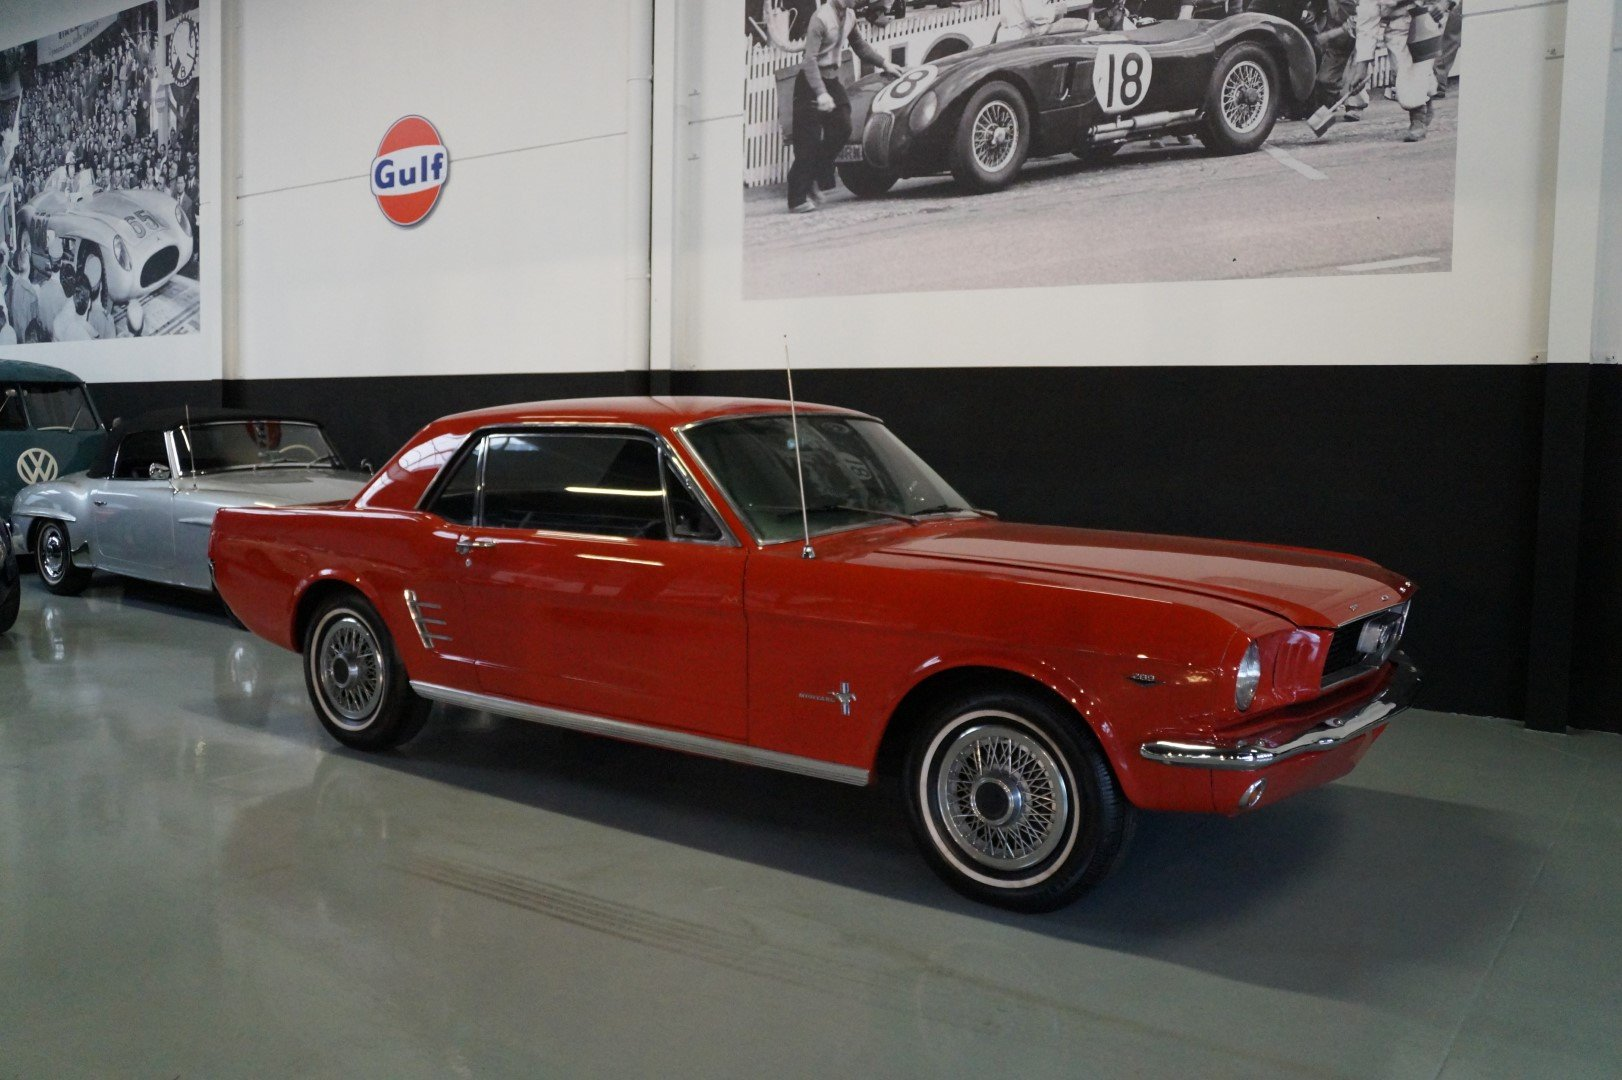 FORD MUSTANG V8 Coupe Nice Driver (1966) For Sale (picture 1 of 6)